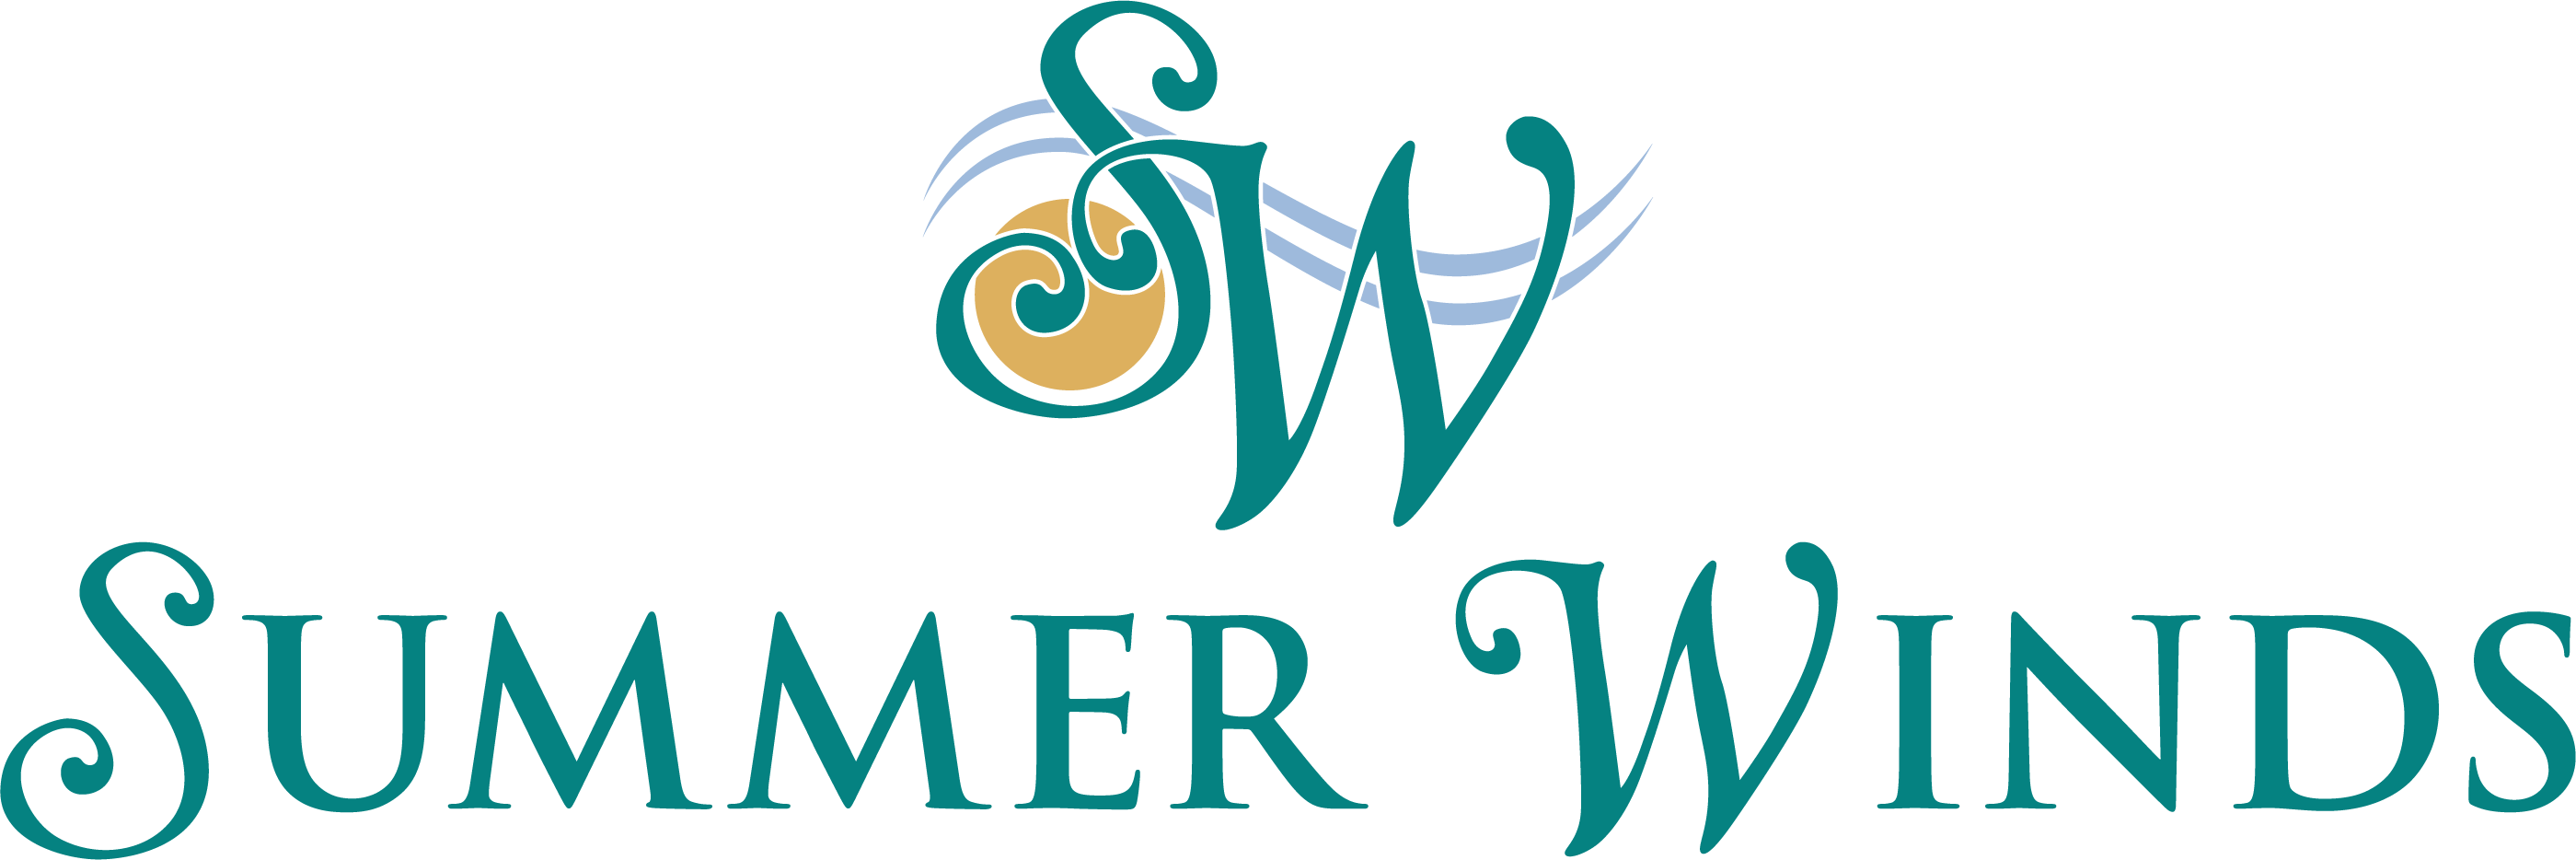 Summerwinds